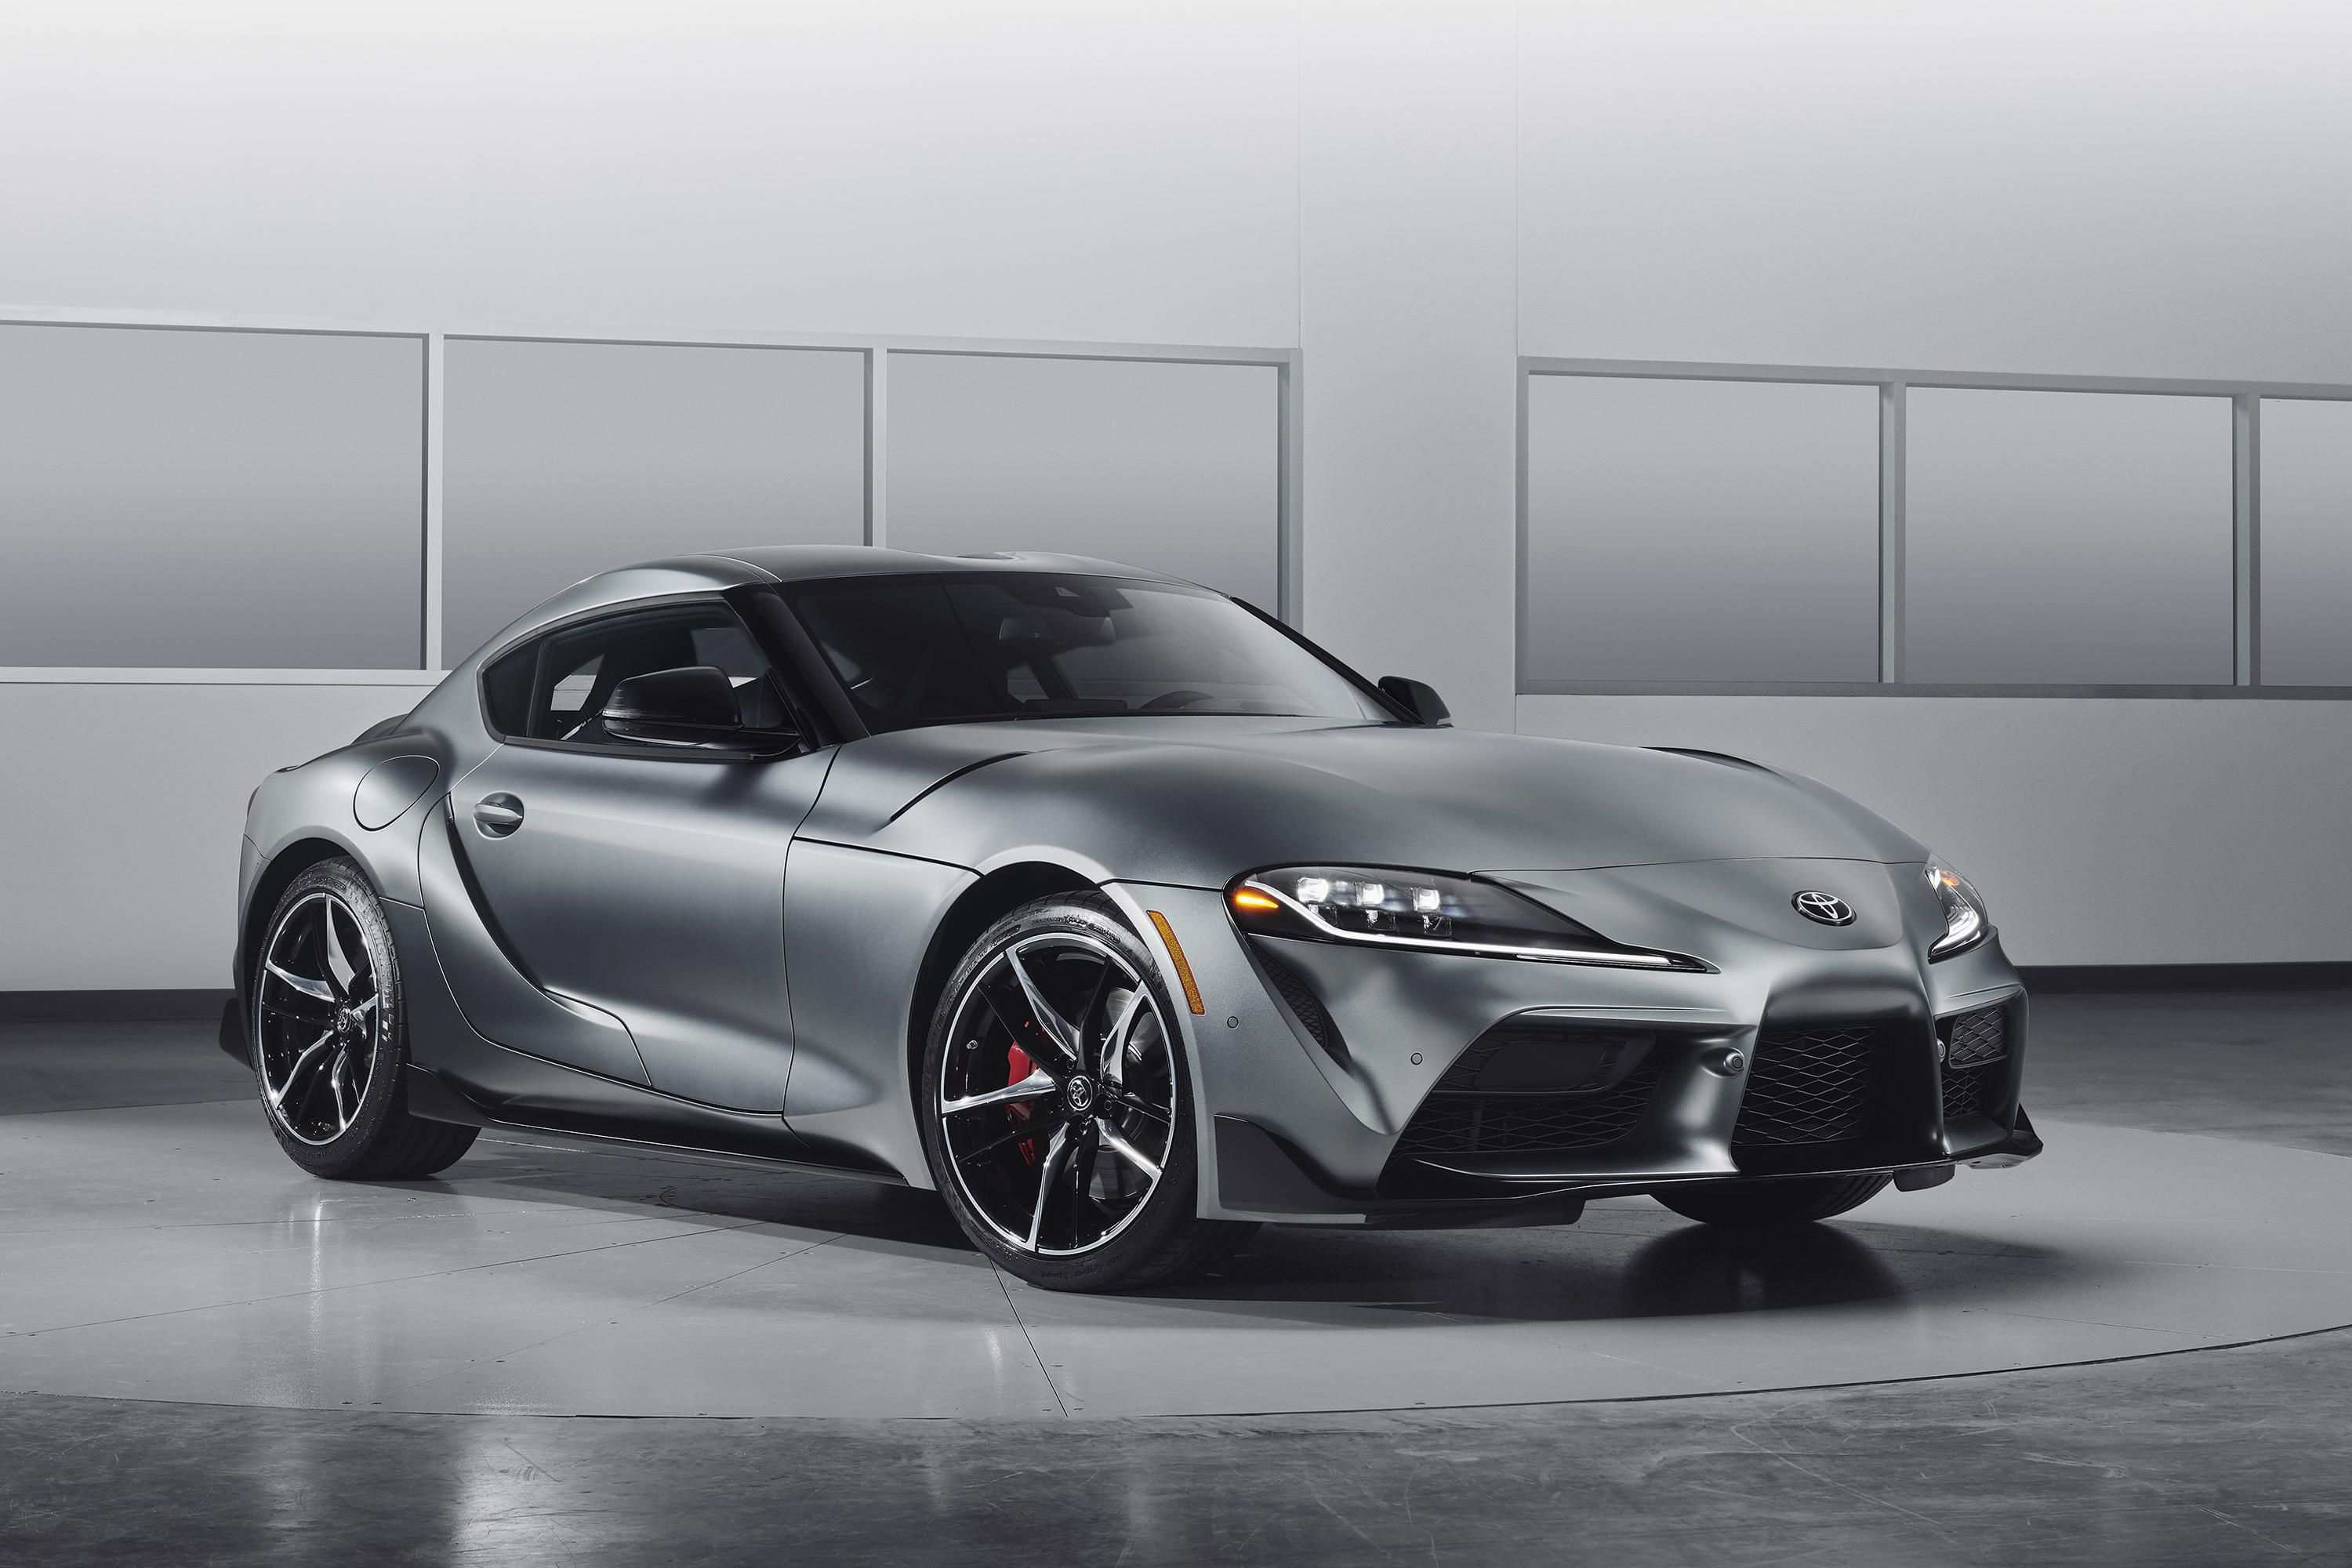 78 Gallery of Cost Of 2020 Toyota Supra Images for Cost Of 2020 Toyota Supra